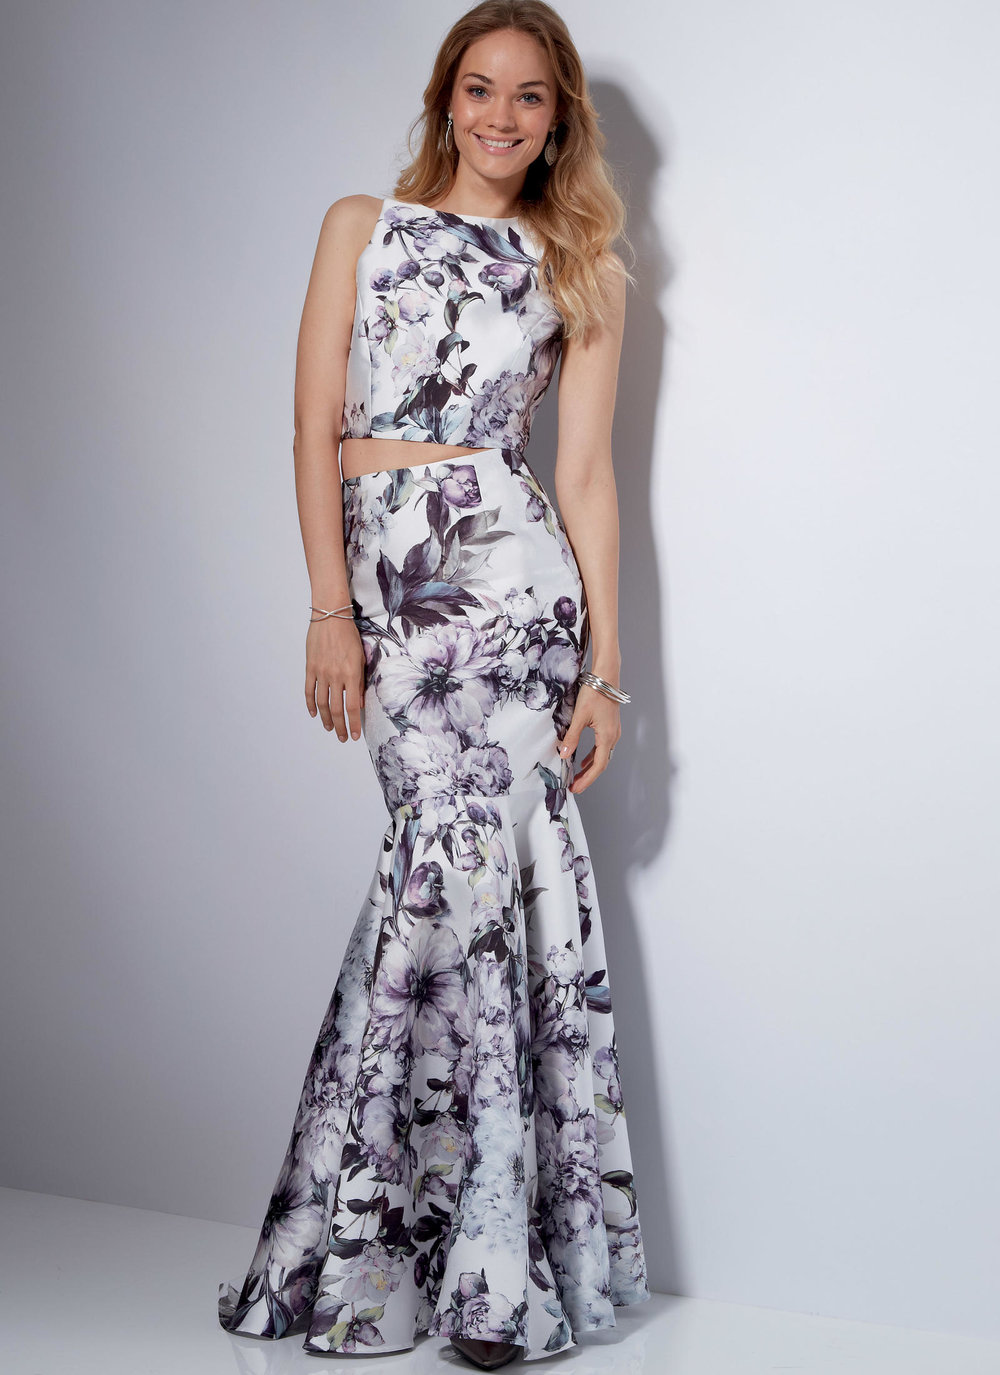 Brunch-and-Sew-McCalls-Spring-2017-Collection